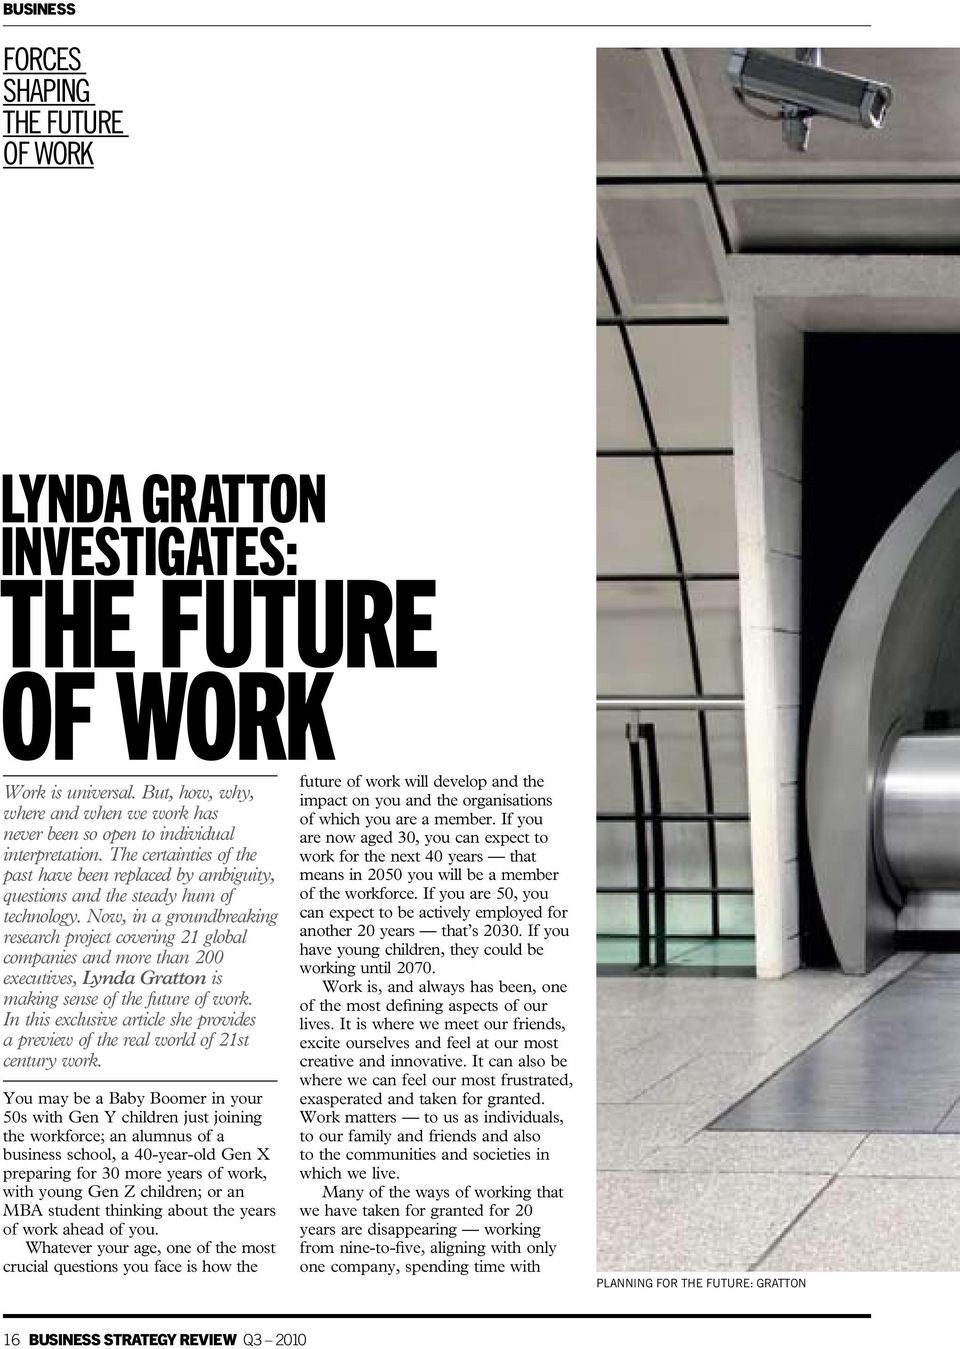 Now, in a groundbreaking research project covering 21 global companies and more than 200 executives, Lynda Gratton is making sense of the future of work.